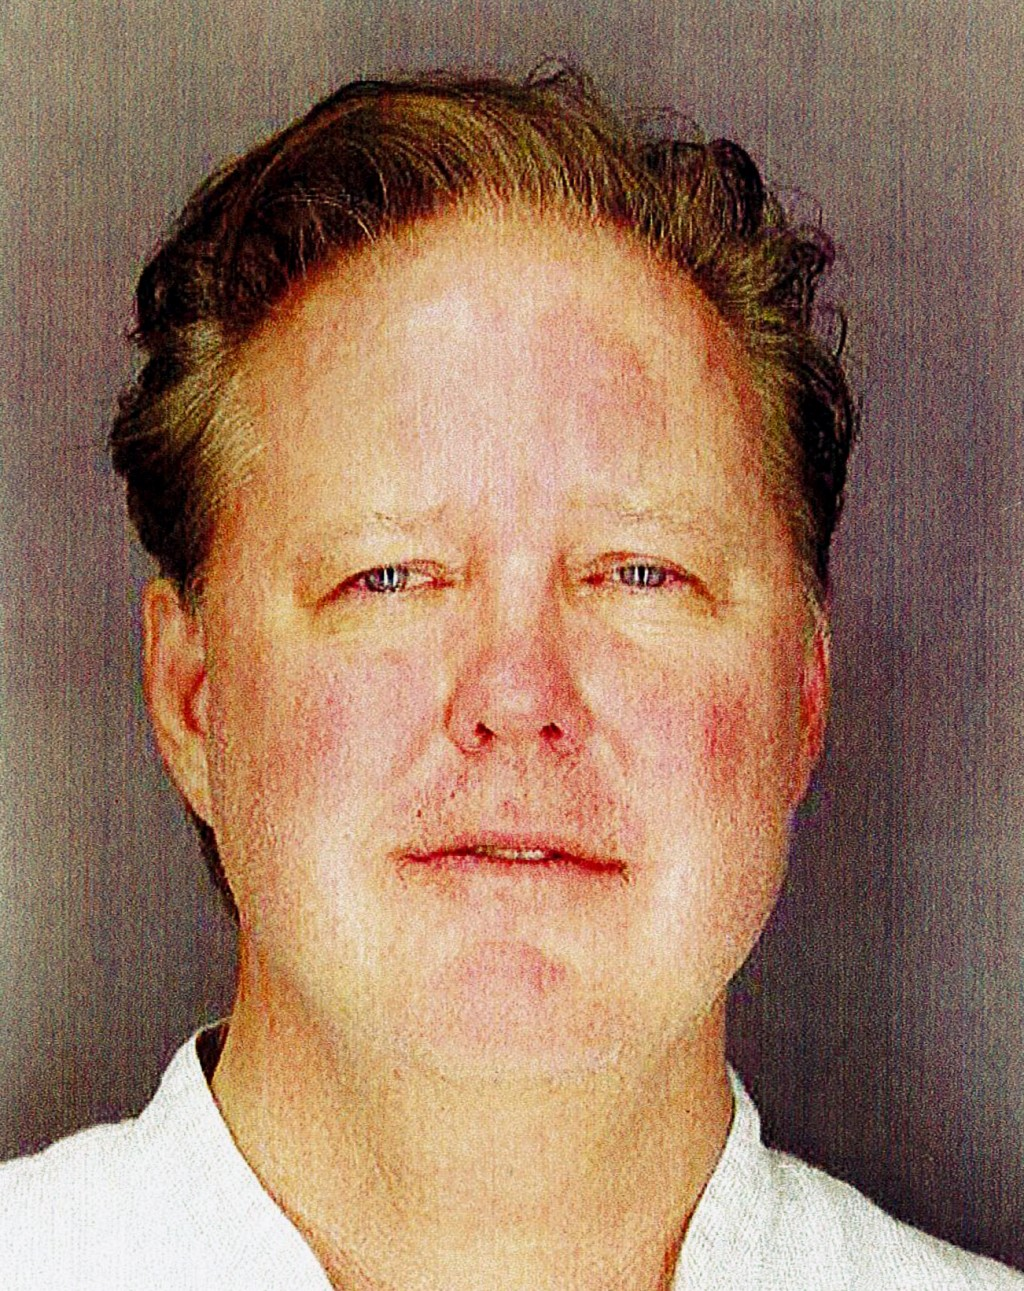 This undated photo provided by Sag Harbor Village Police Department on Monday Aug. 6, 2018, shows Brian France, chairman of NASCAR, taken after his ar